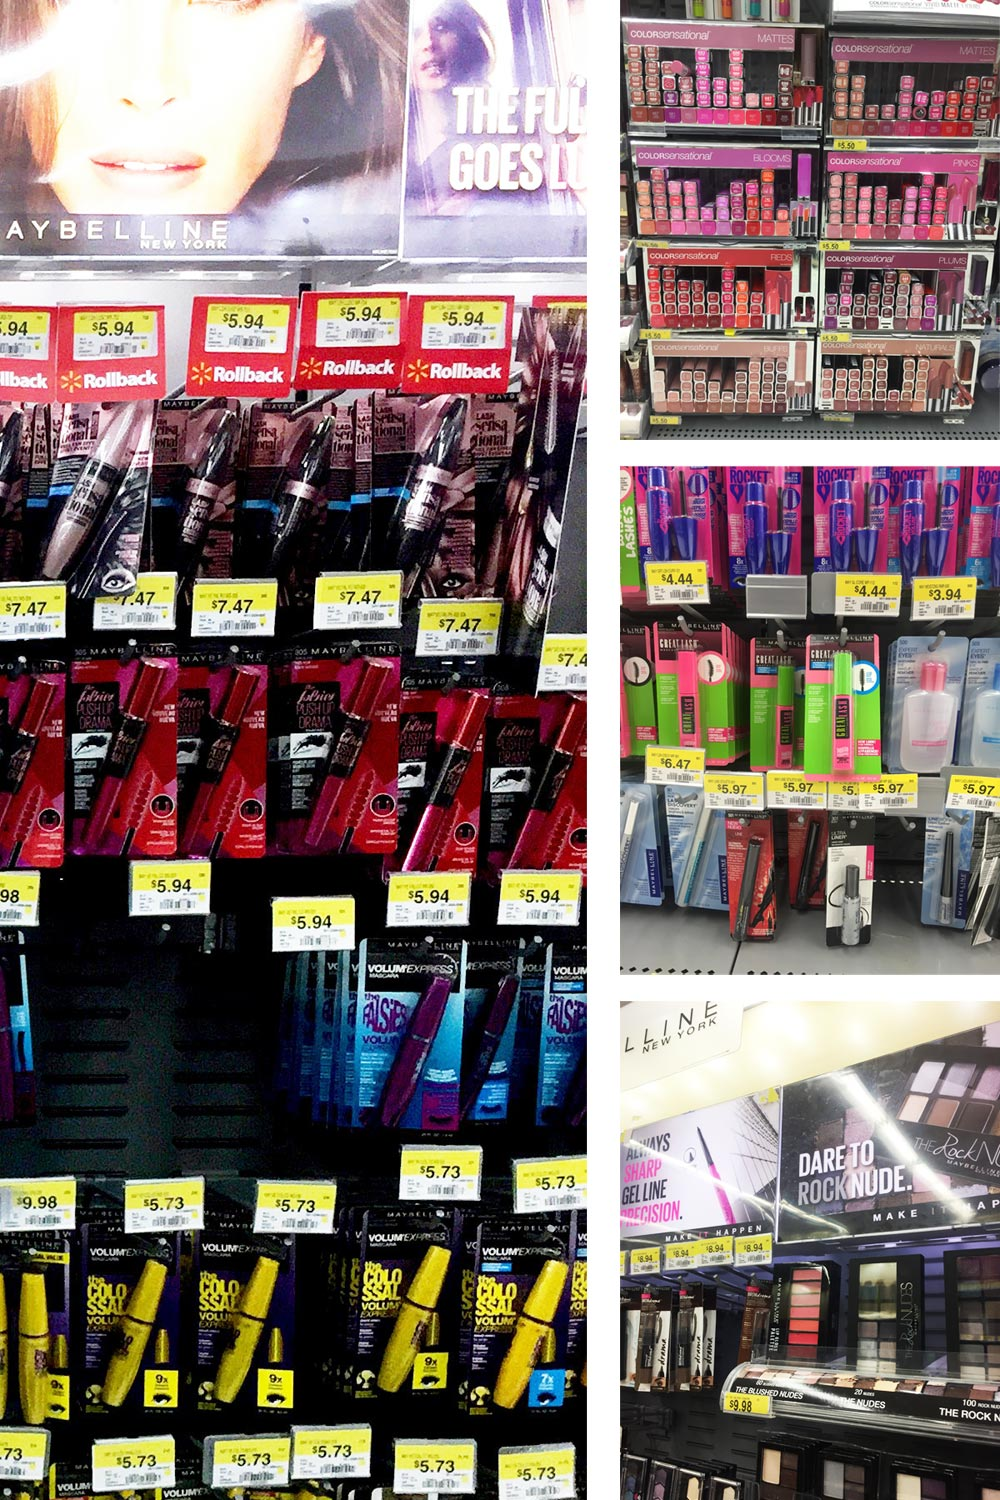 Maybelline Looks to Love Cosmetics at Walmart // Hello Rigby Seattle Beauty Blog